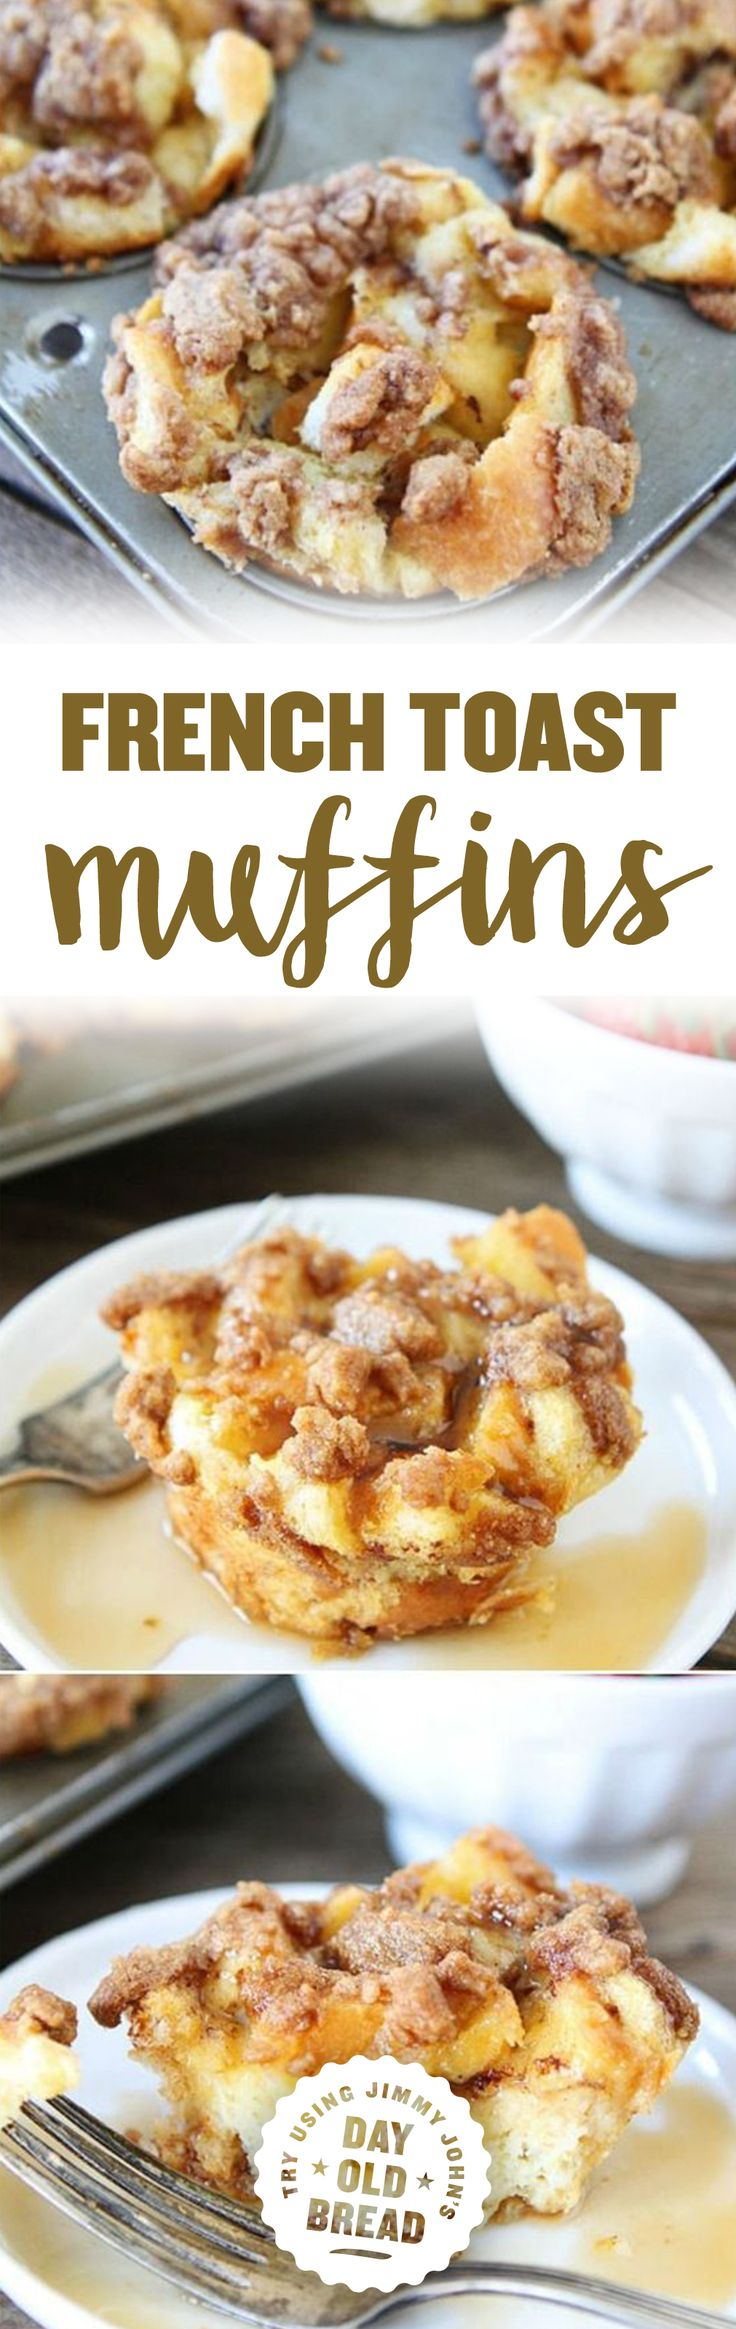 Baked French Toast Muffins Recipe on http://twopeasandtheirpod.com Try making with Jimmy John's Day Old Bread for a yummy breakfast treat